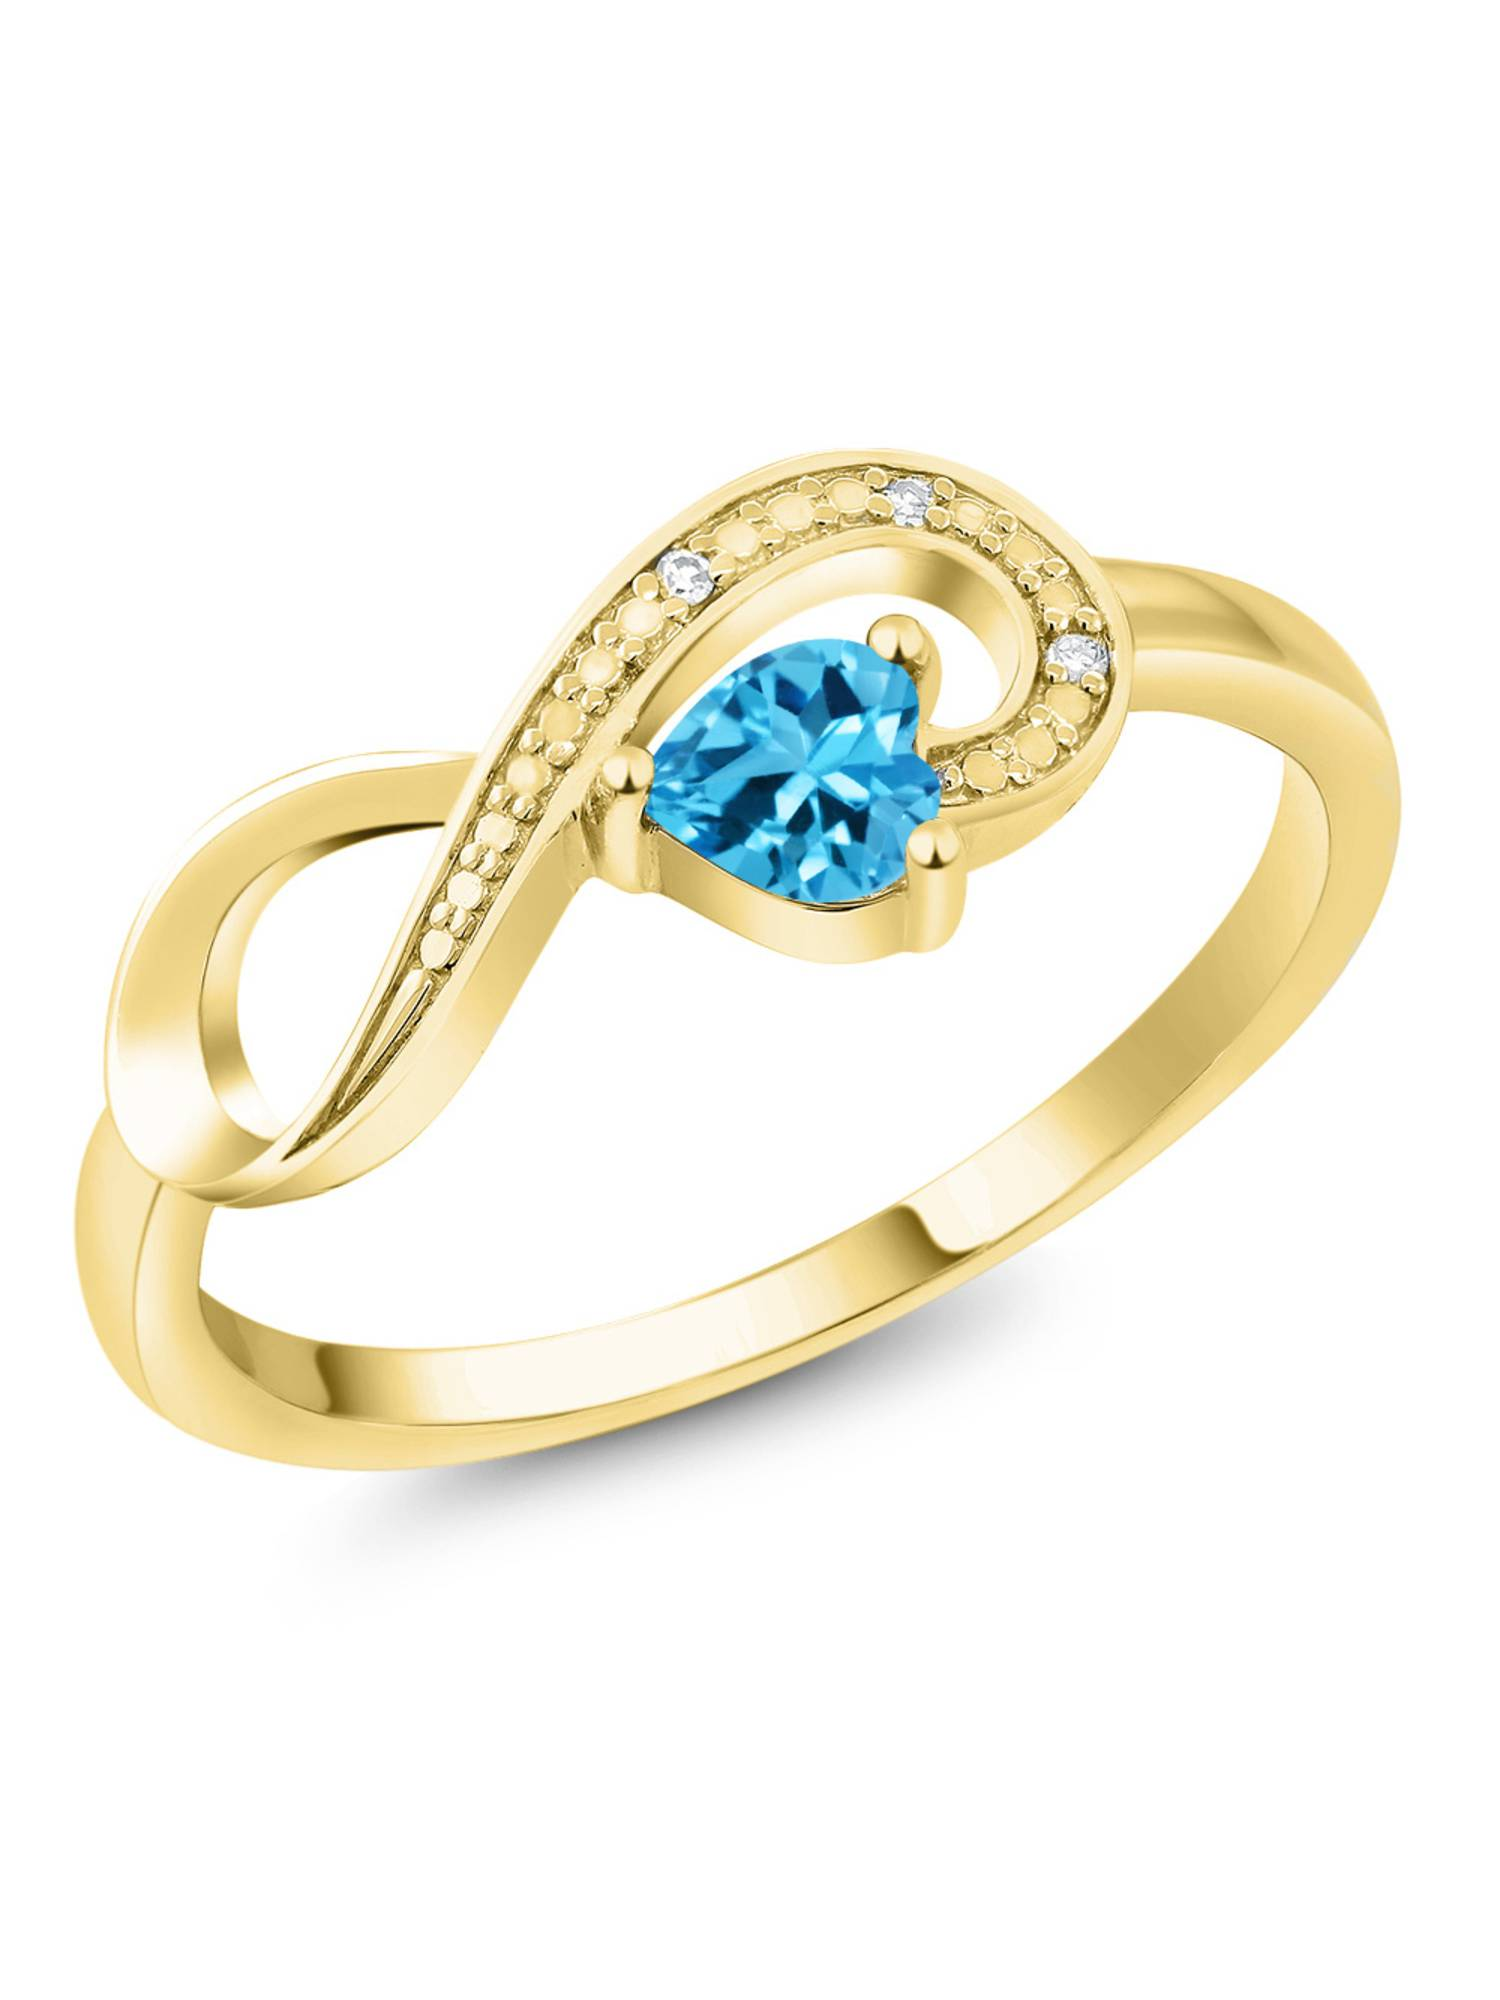 10K Yellow Gold 0.33 Ct Heart Shape Swiss Blue Topaz Diamond Infinity Ring by